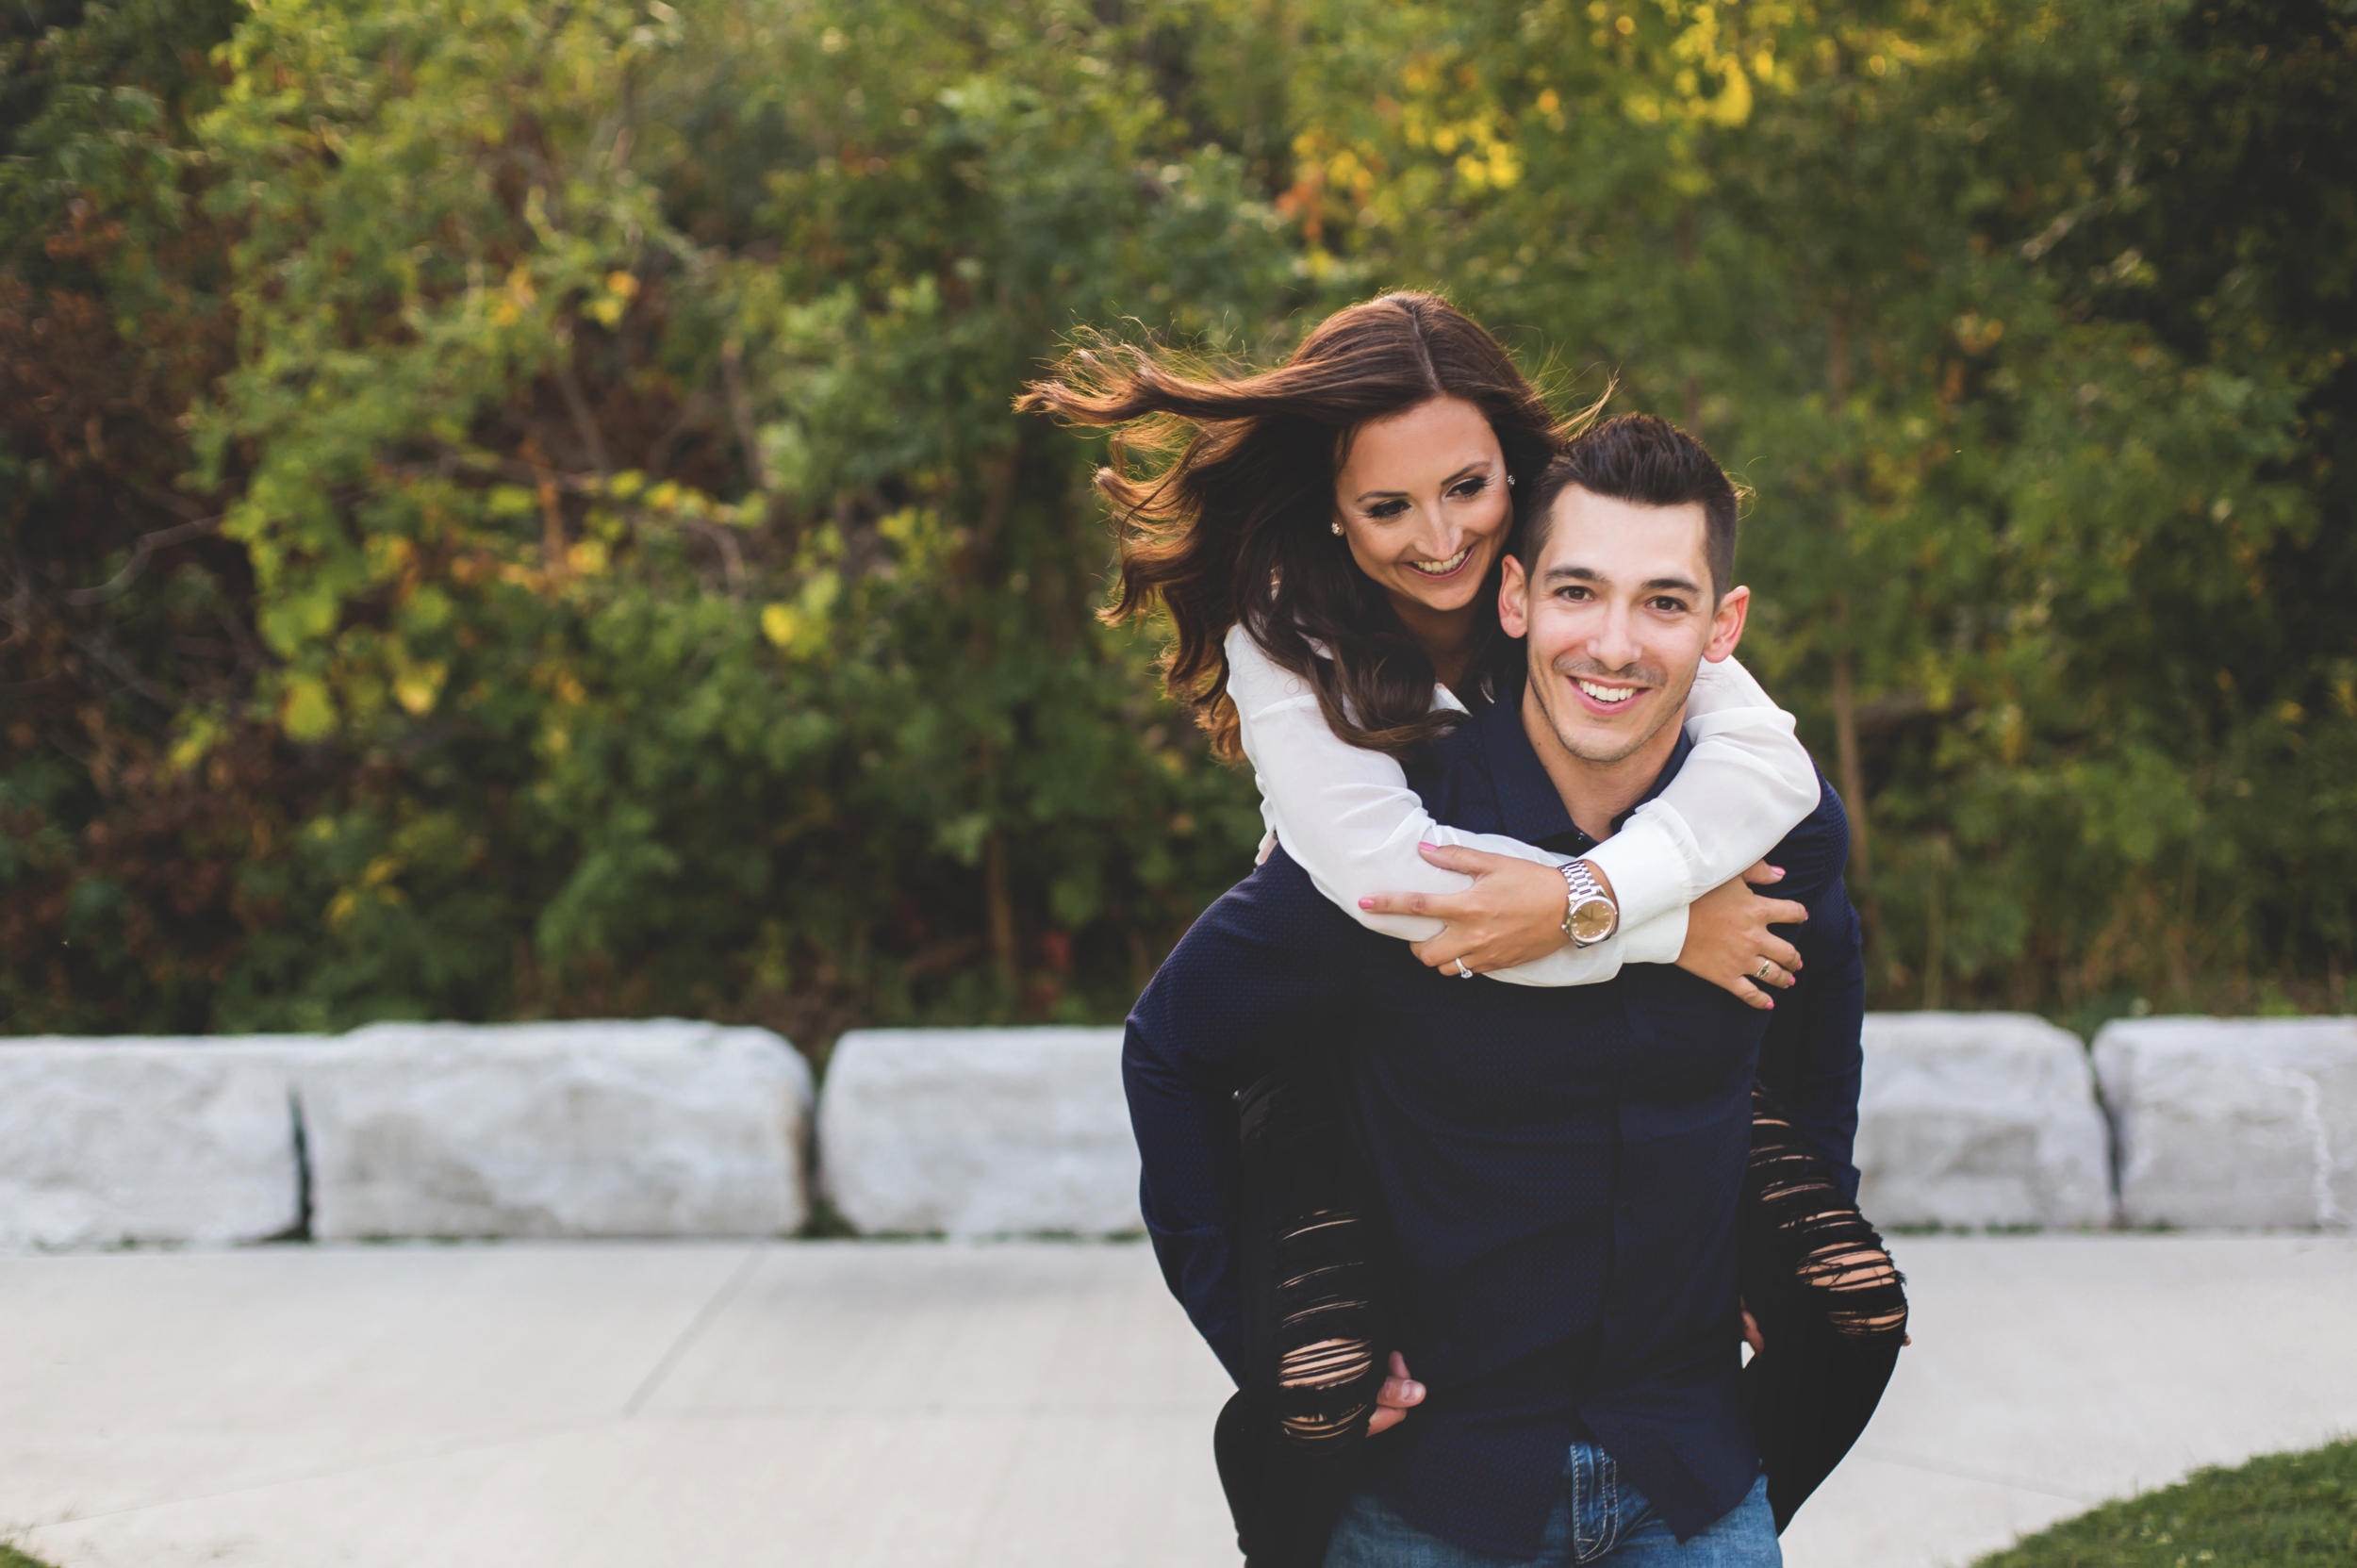 Engagement-Session-Hamilton-Burlington-Oakville-Toronto-Niagara-Wedding-Photographer-Engaged-Photography-Session-HamOnt-Moments-by-Lauren-Photo-Image-10.png